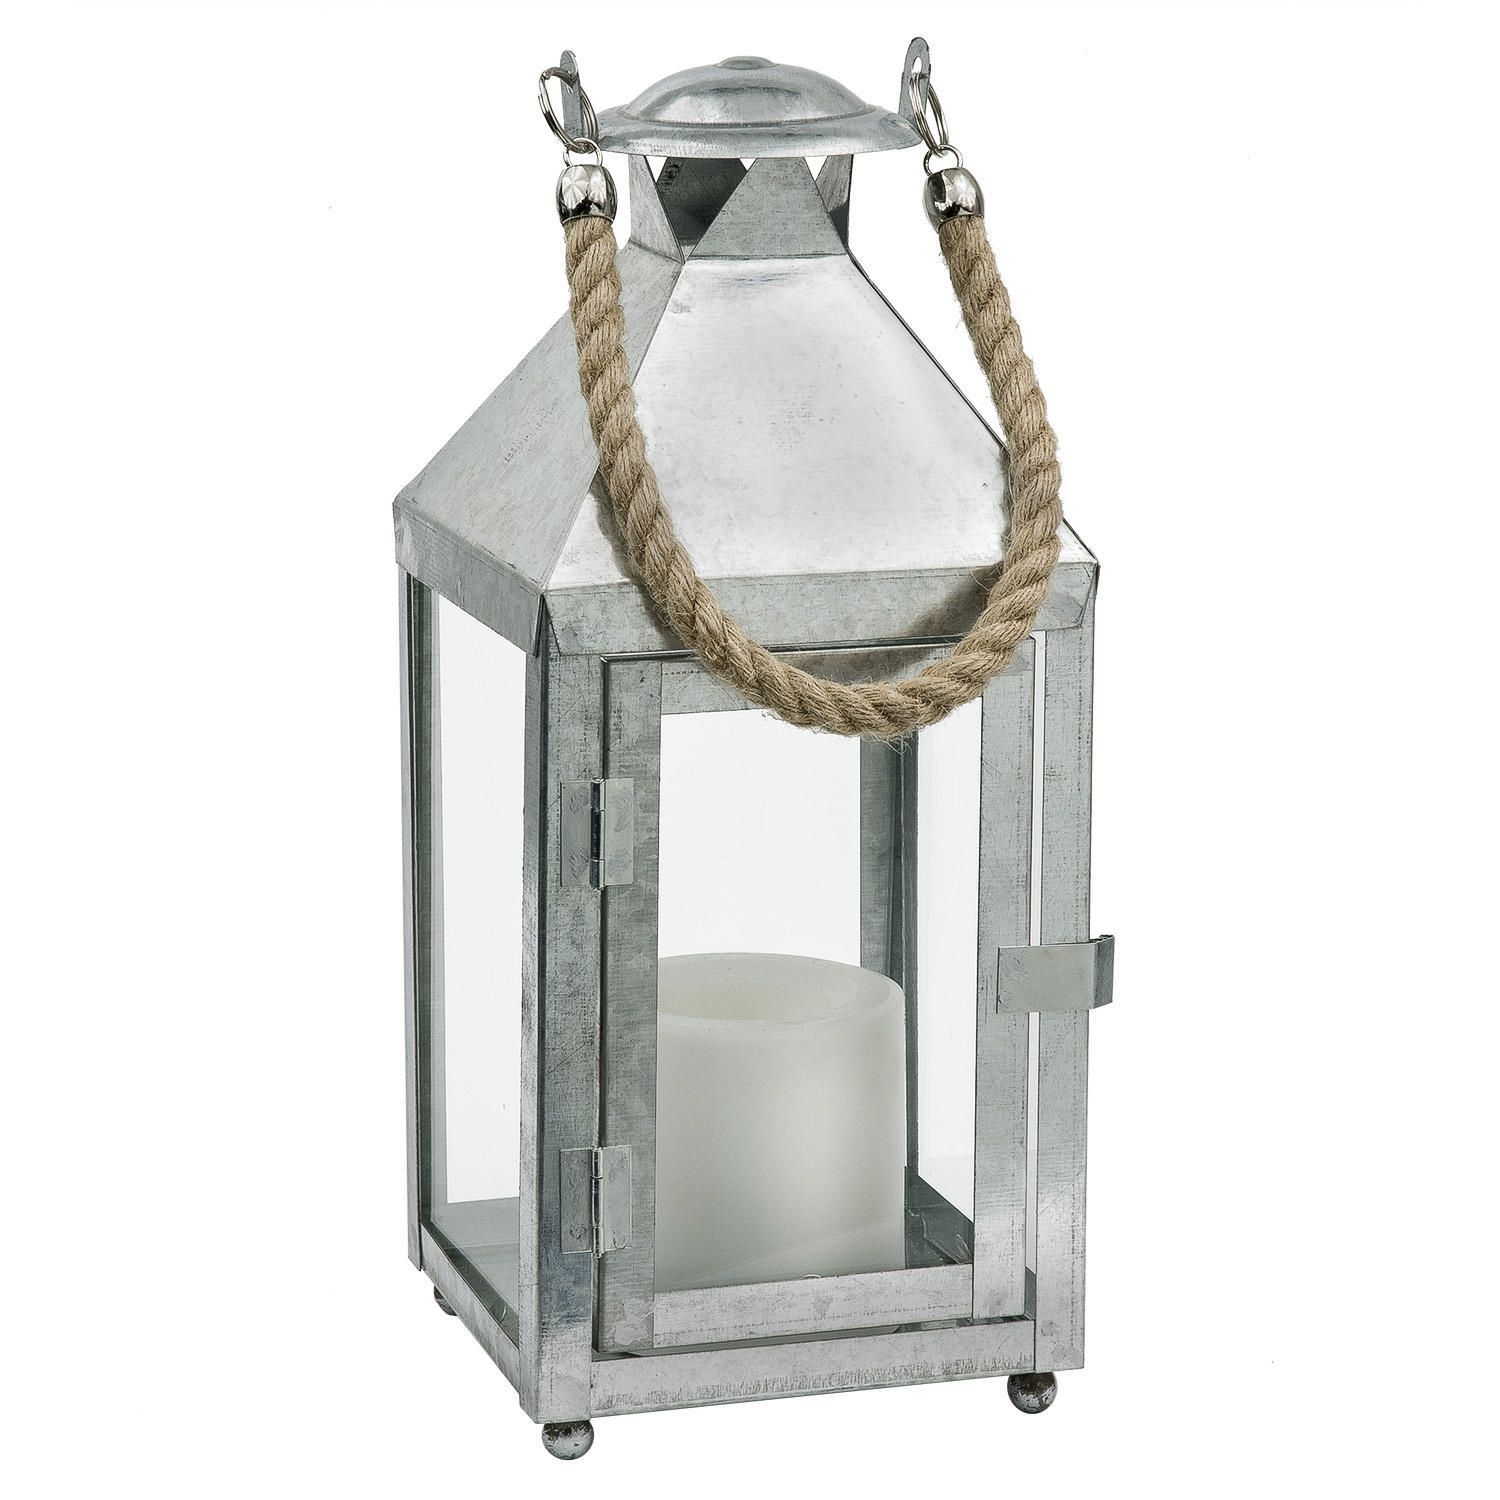 Paradise Gl28672Mgv Metal Lantern And Flameless Outdoor Candle regarding Outdoor Lanterns With Timers (Image 14 of 20)